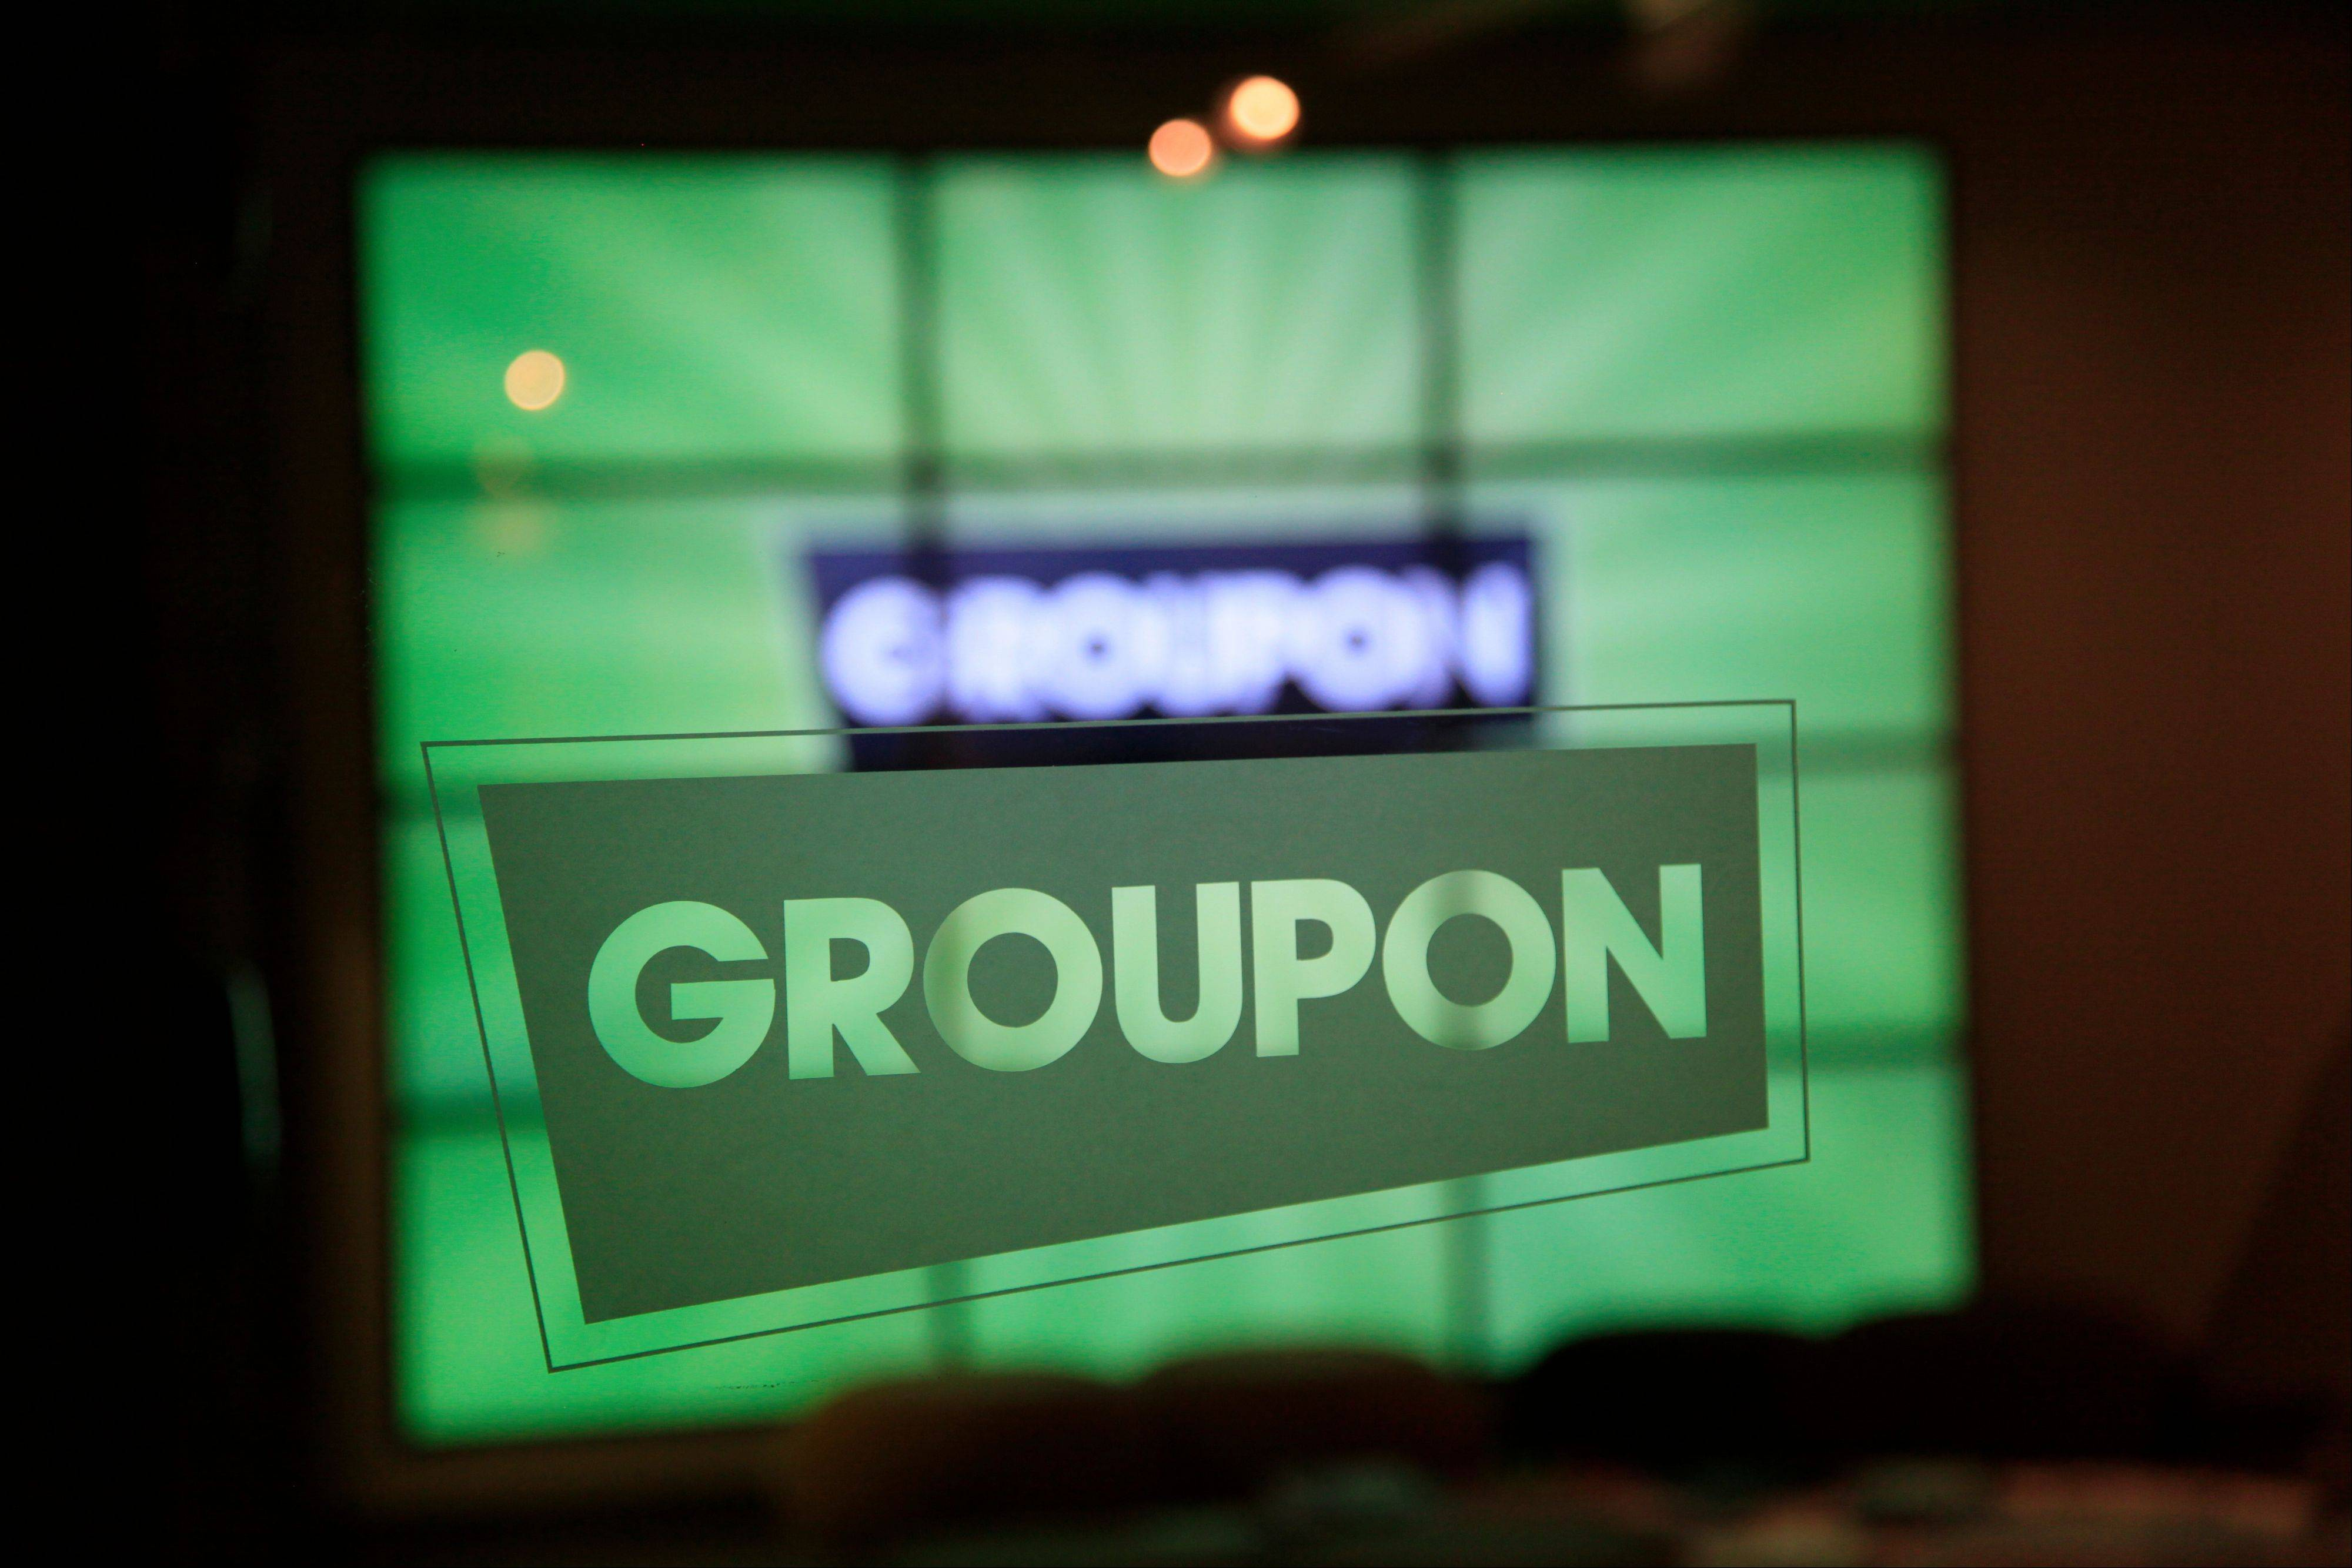 Groupon Inc. shares lost a fifth of their value after the largest daily-deal website reported second-quarter revenue that missed estimates as economic weakness in Europe curbed online coupon sales.